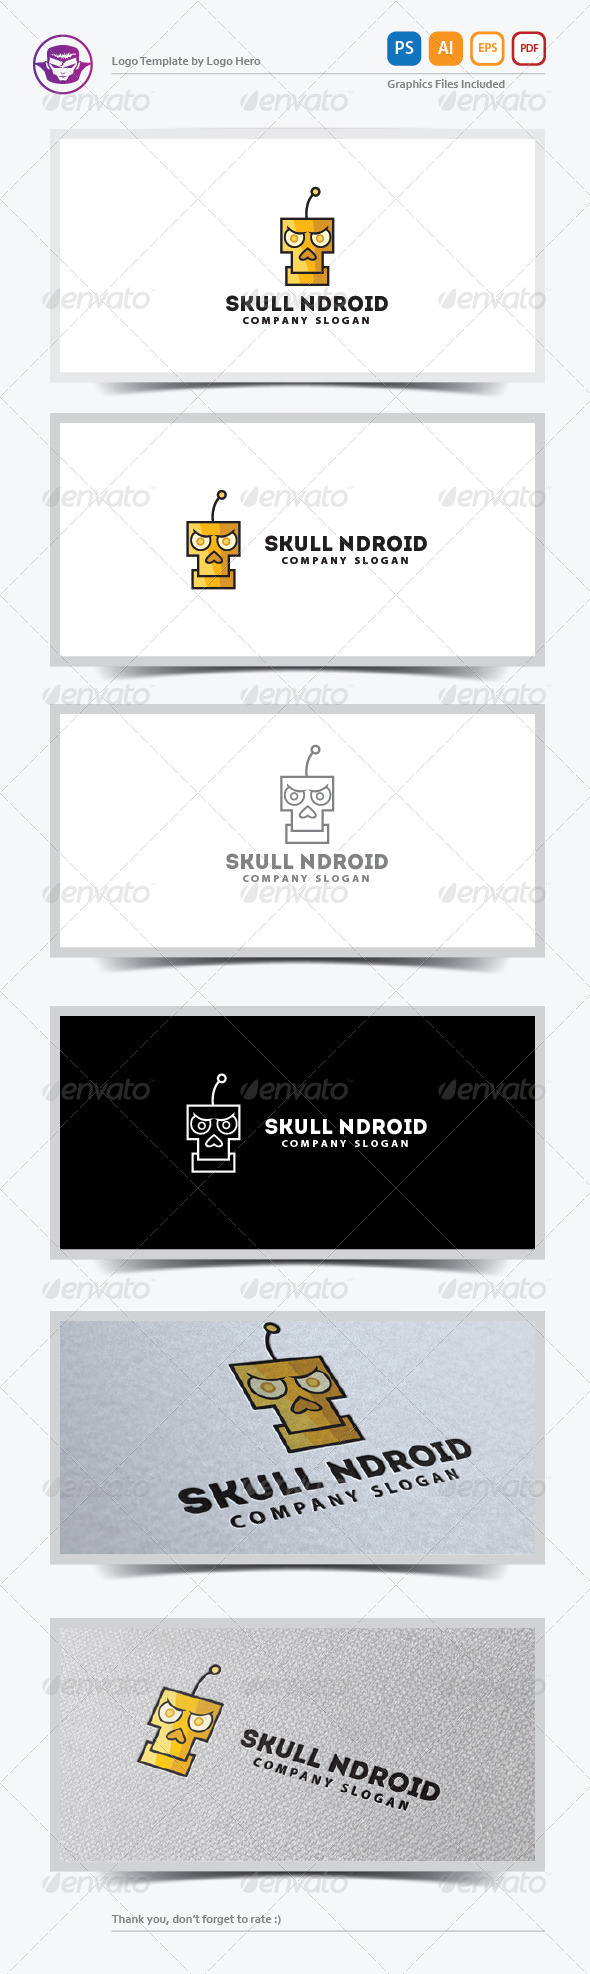 GraphicRiver Skull Ndroid Logo Template 6125850